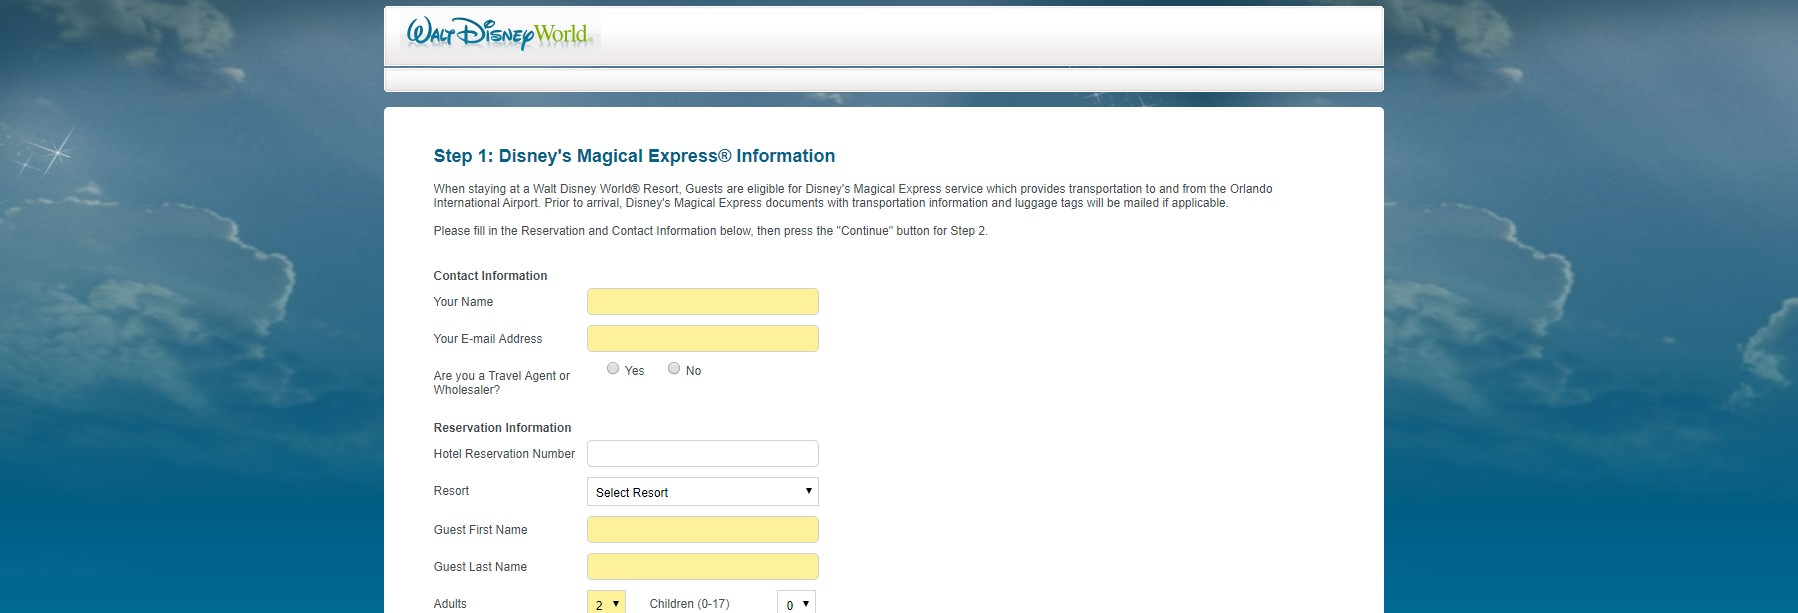 disney magical express reservations site screenshot